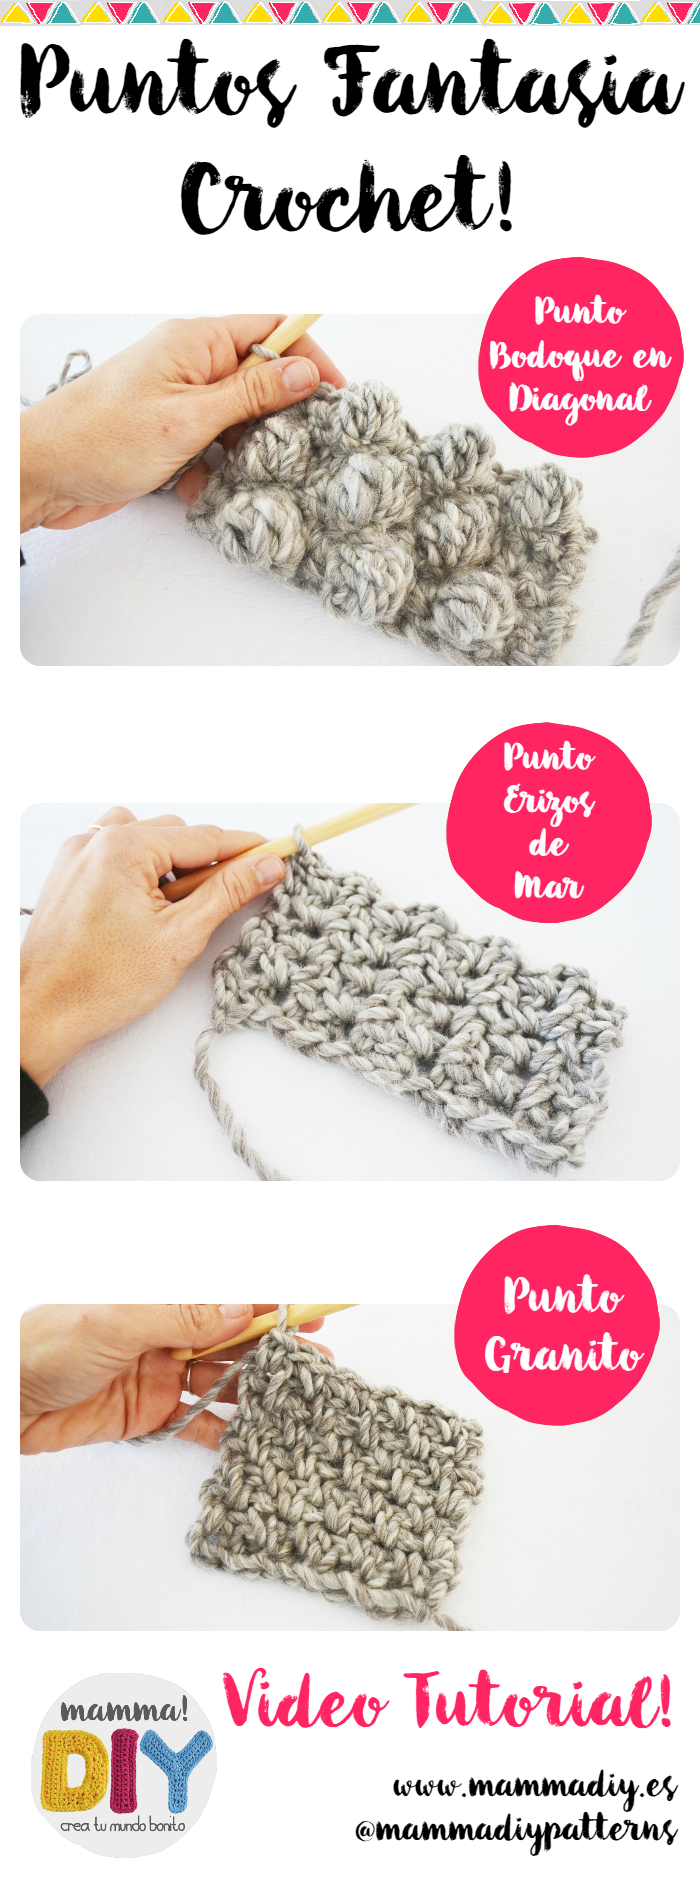 Puntos Fantasía Crochet Video Tutorial Youtube por Mamma DIY